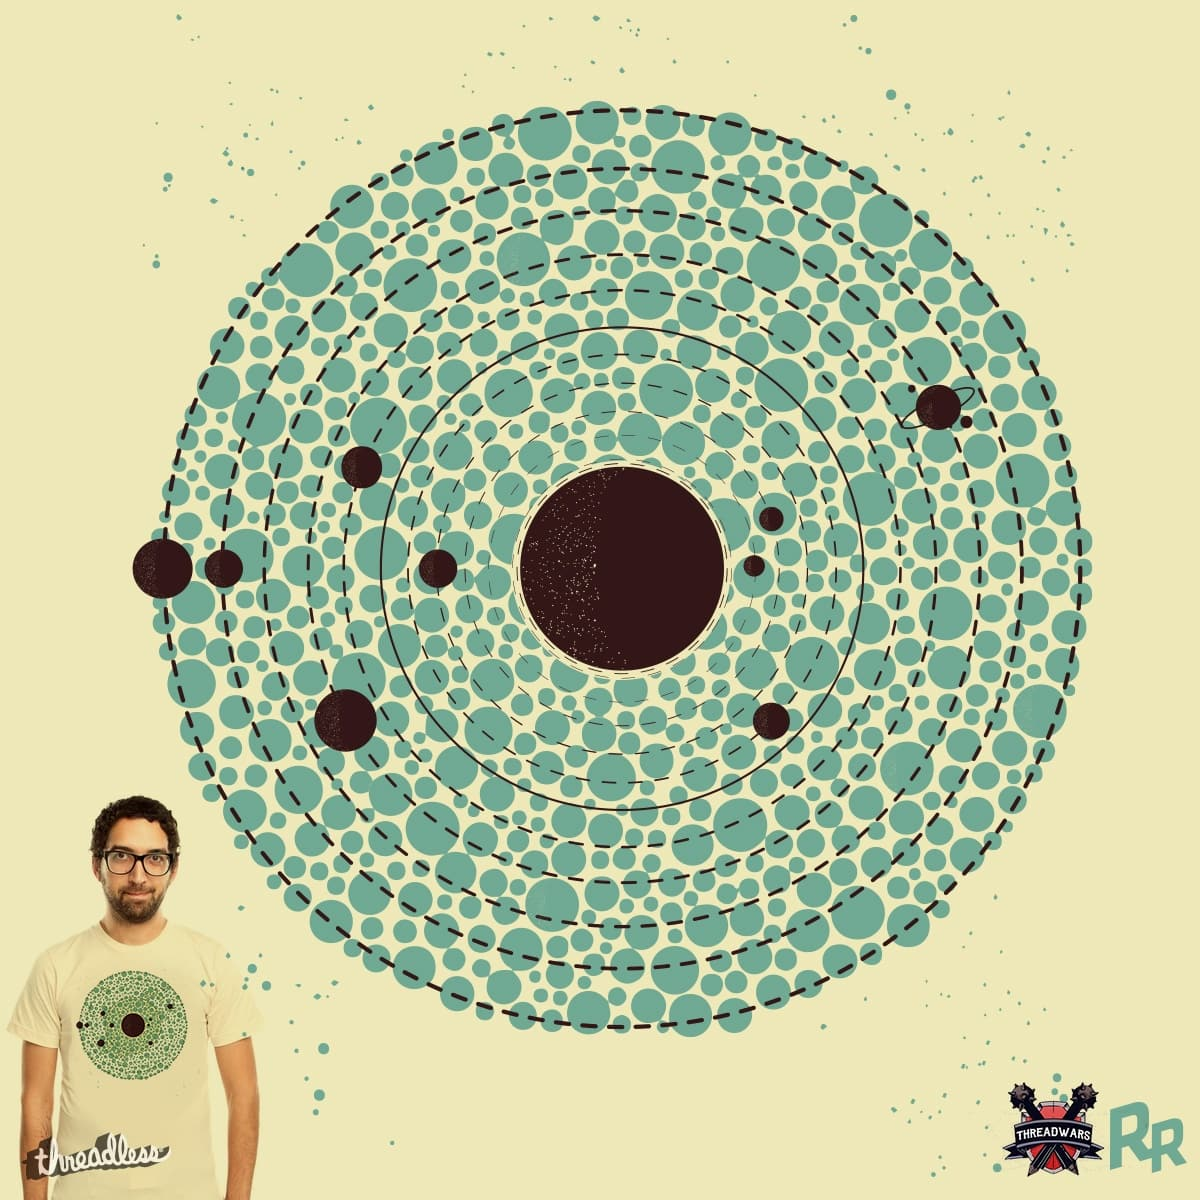 See the World by Ryder on Threadless